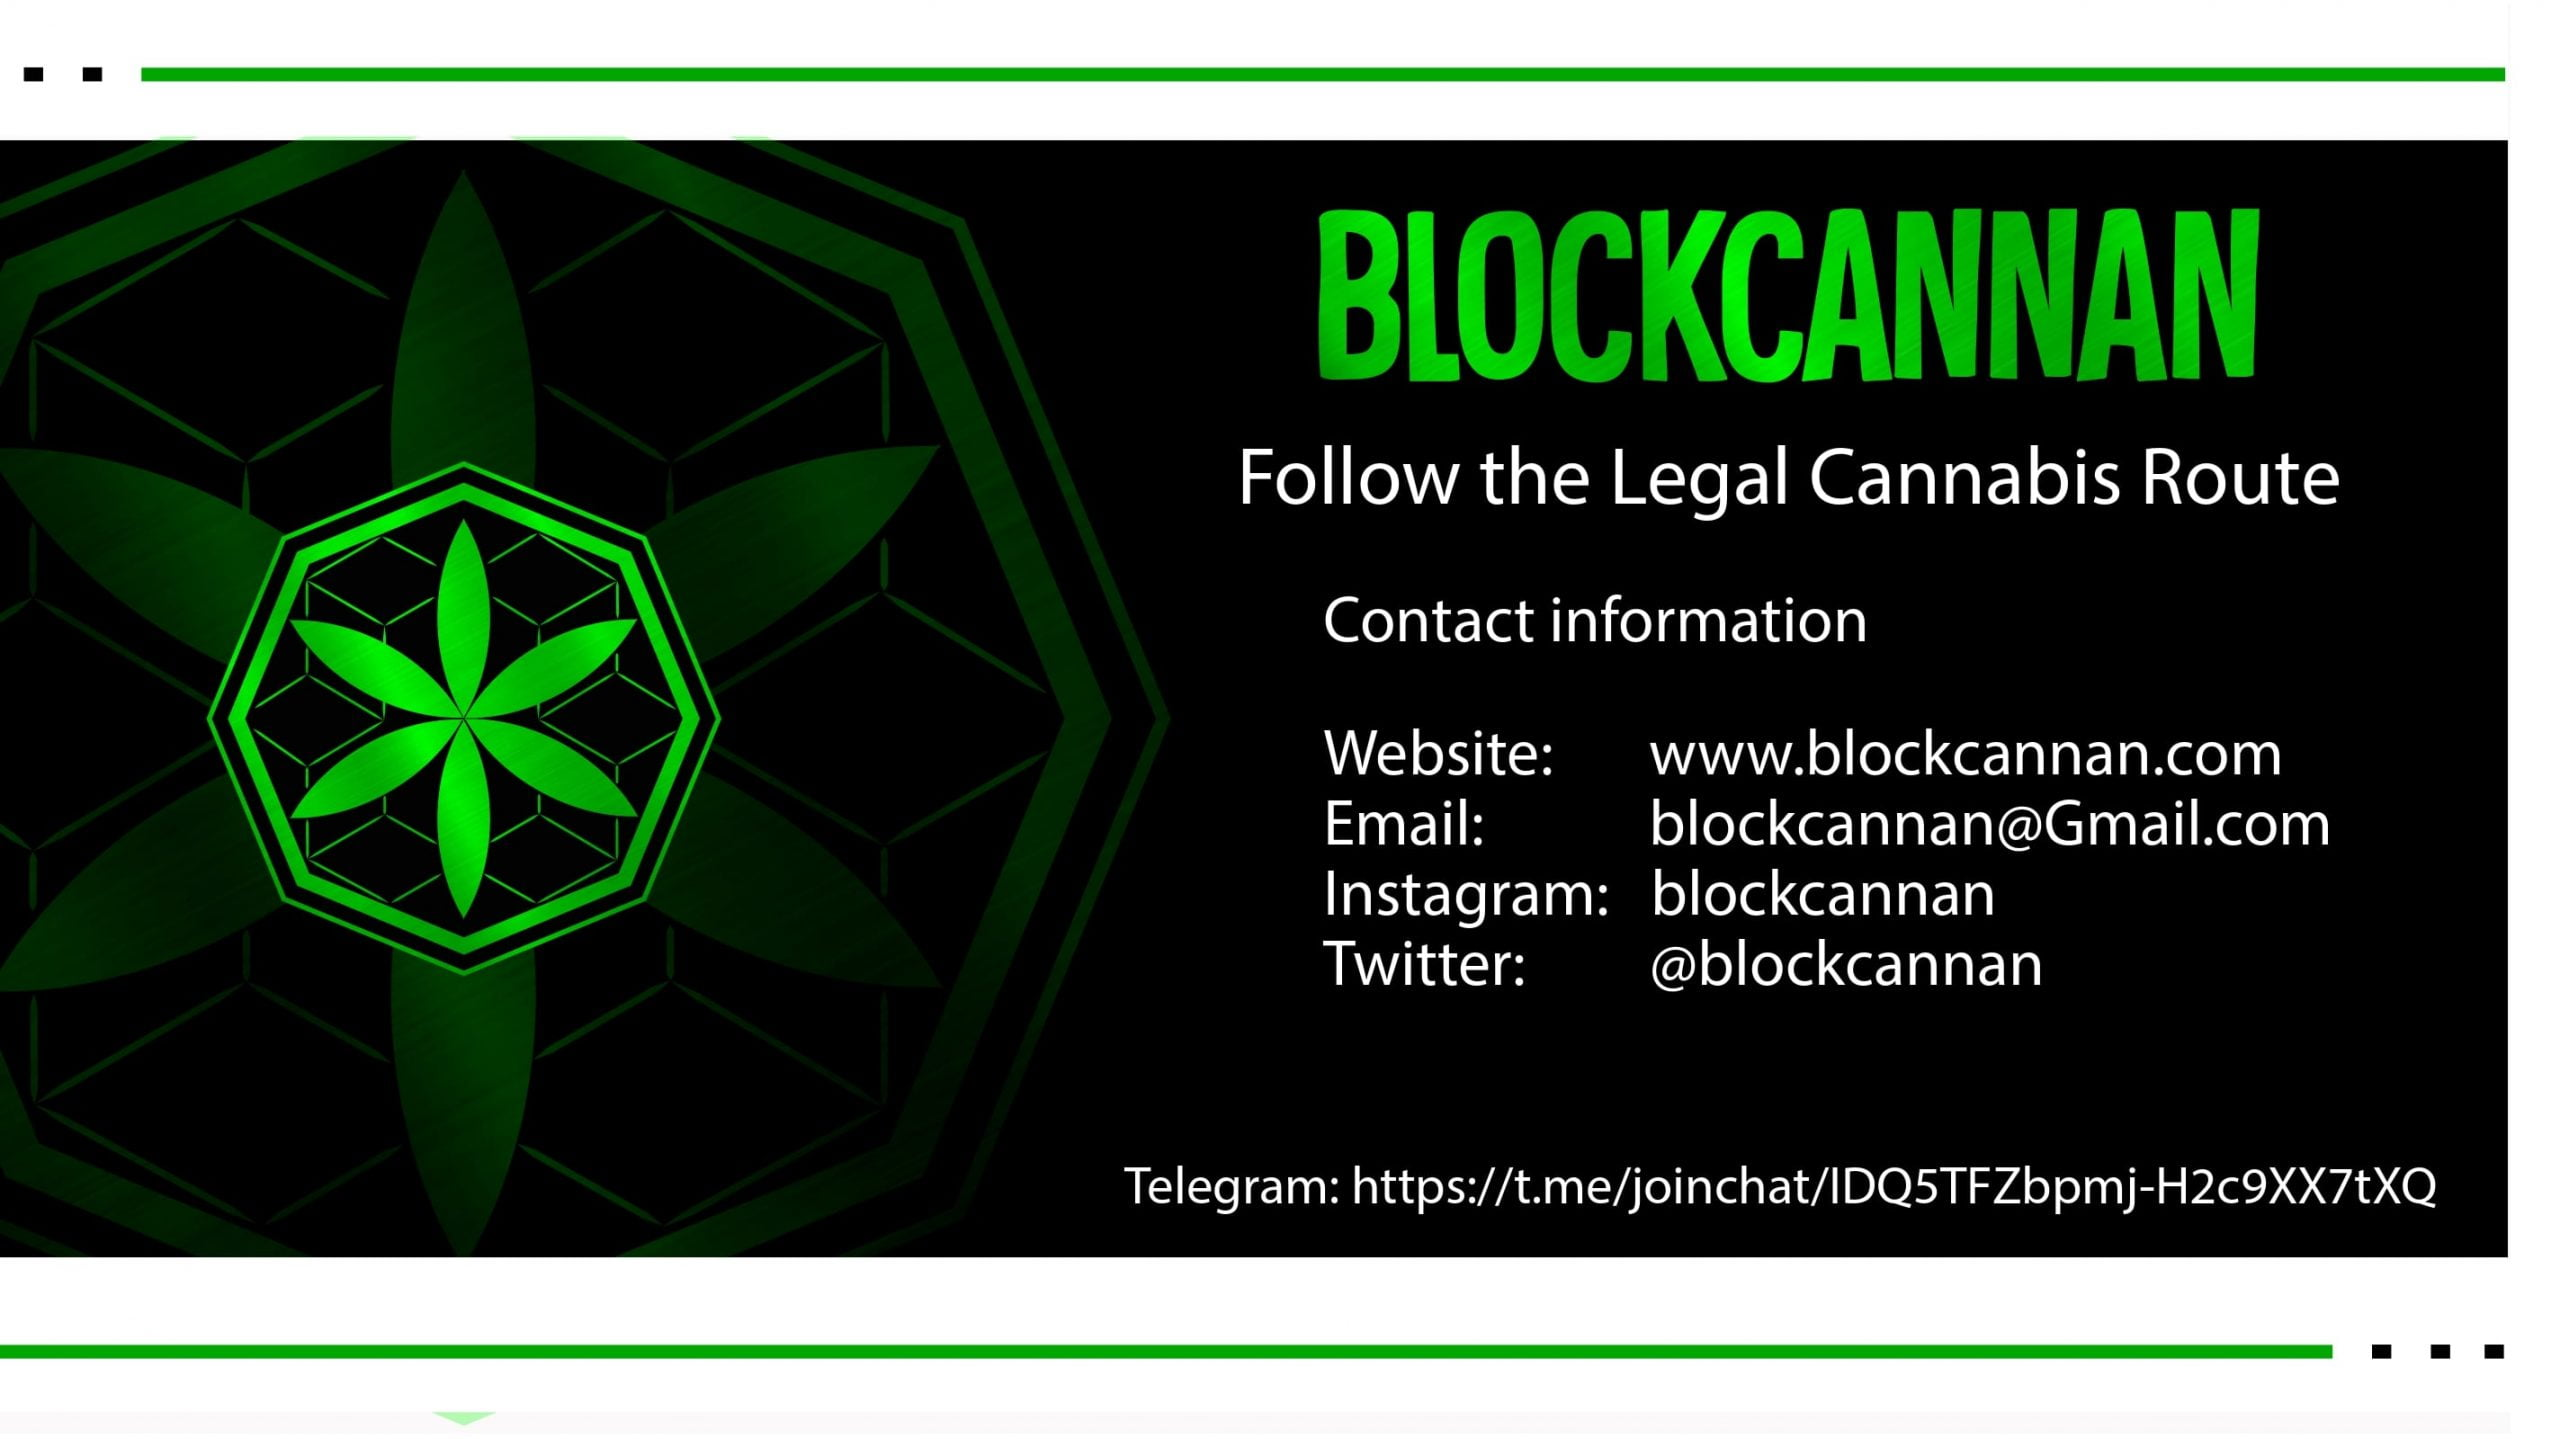 Software for monitoring medical cannabis with blockchain technology presented in Colombia